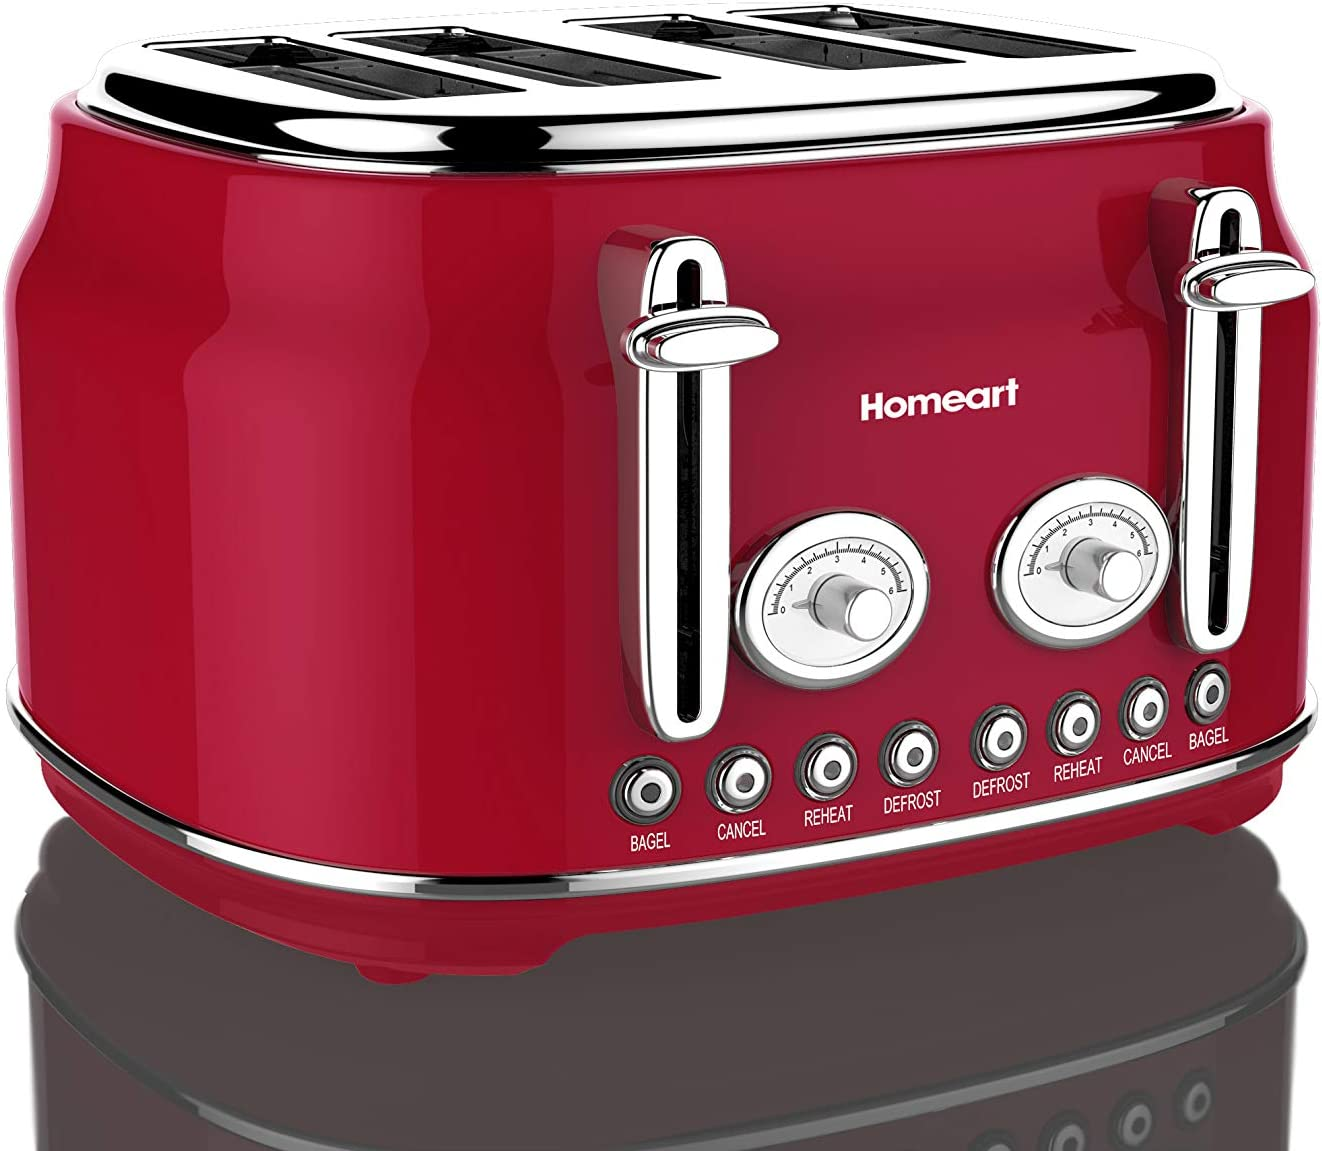 Artisan 4 Slot Toaster by Homeart 2019 Electric Toaster with Multi-Function Toaster Options Vintage Toaster Stainless Steel Red